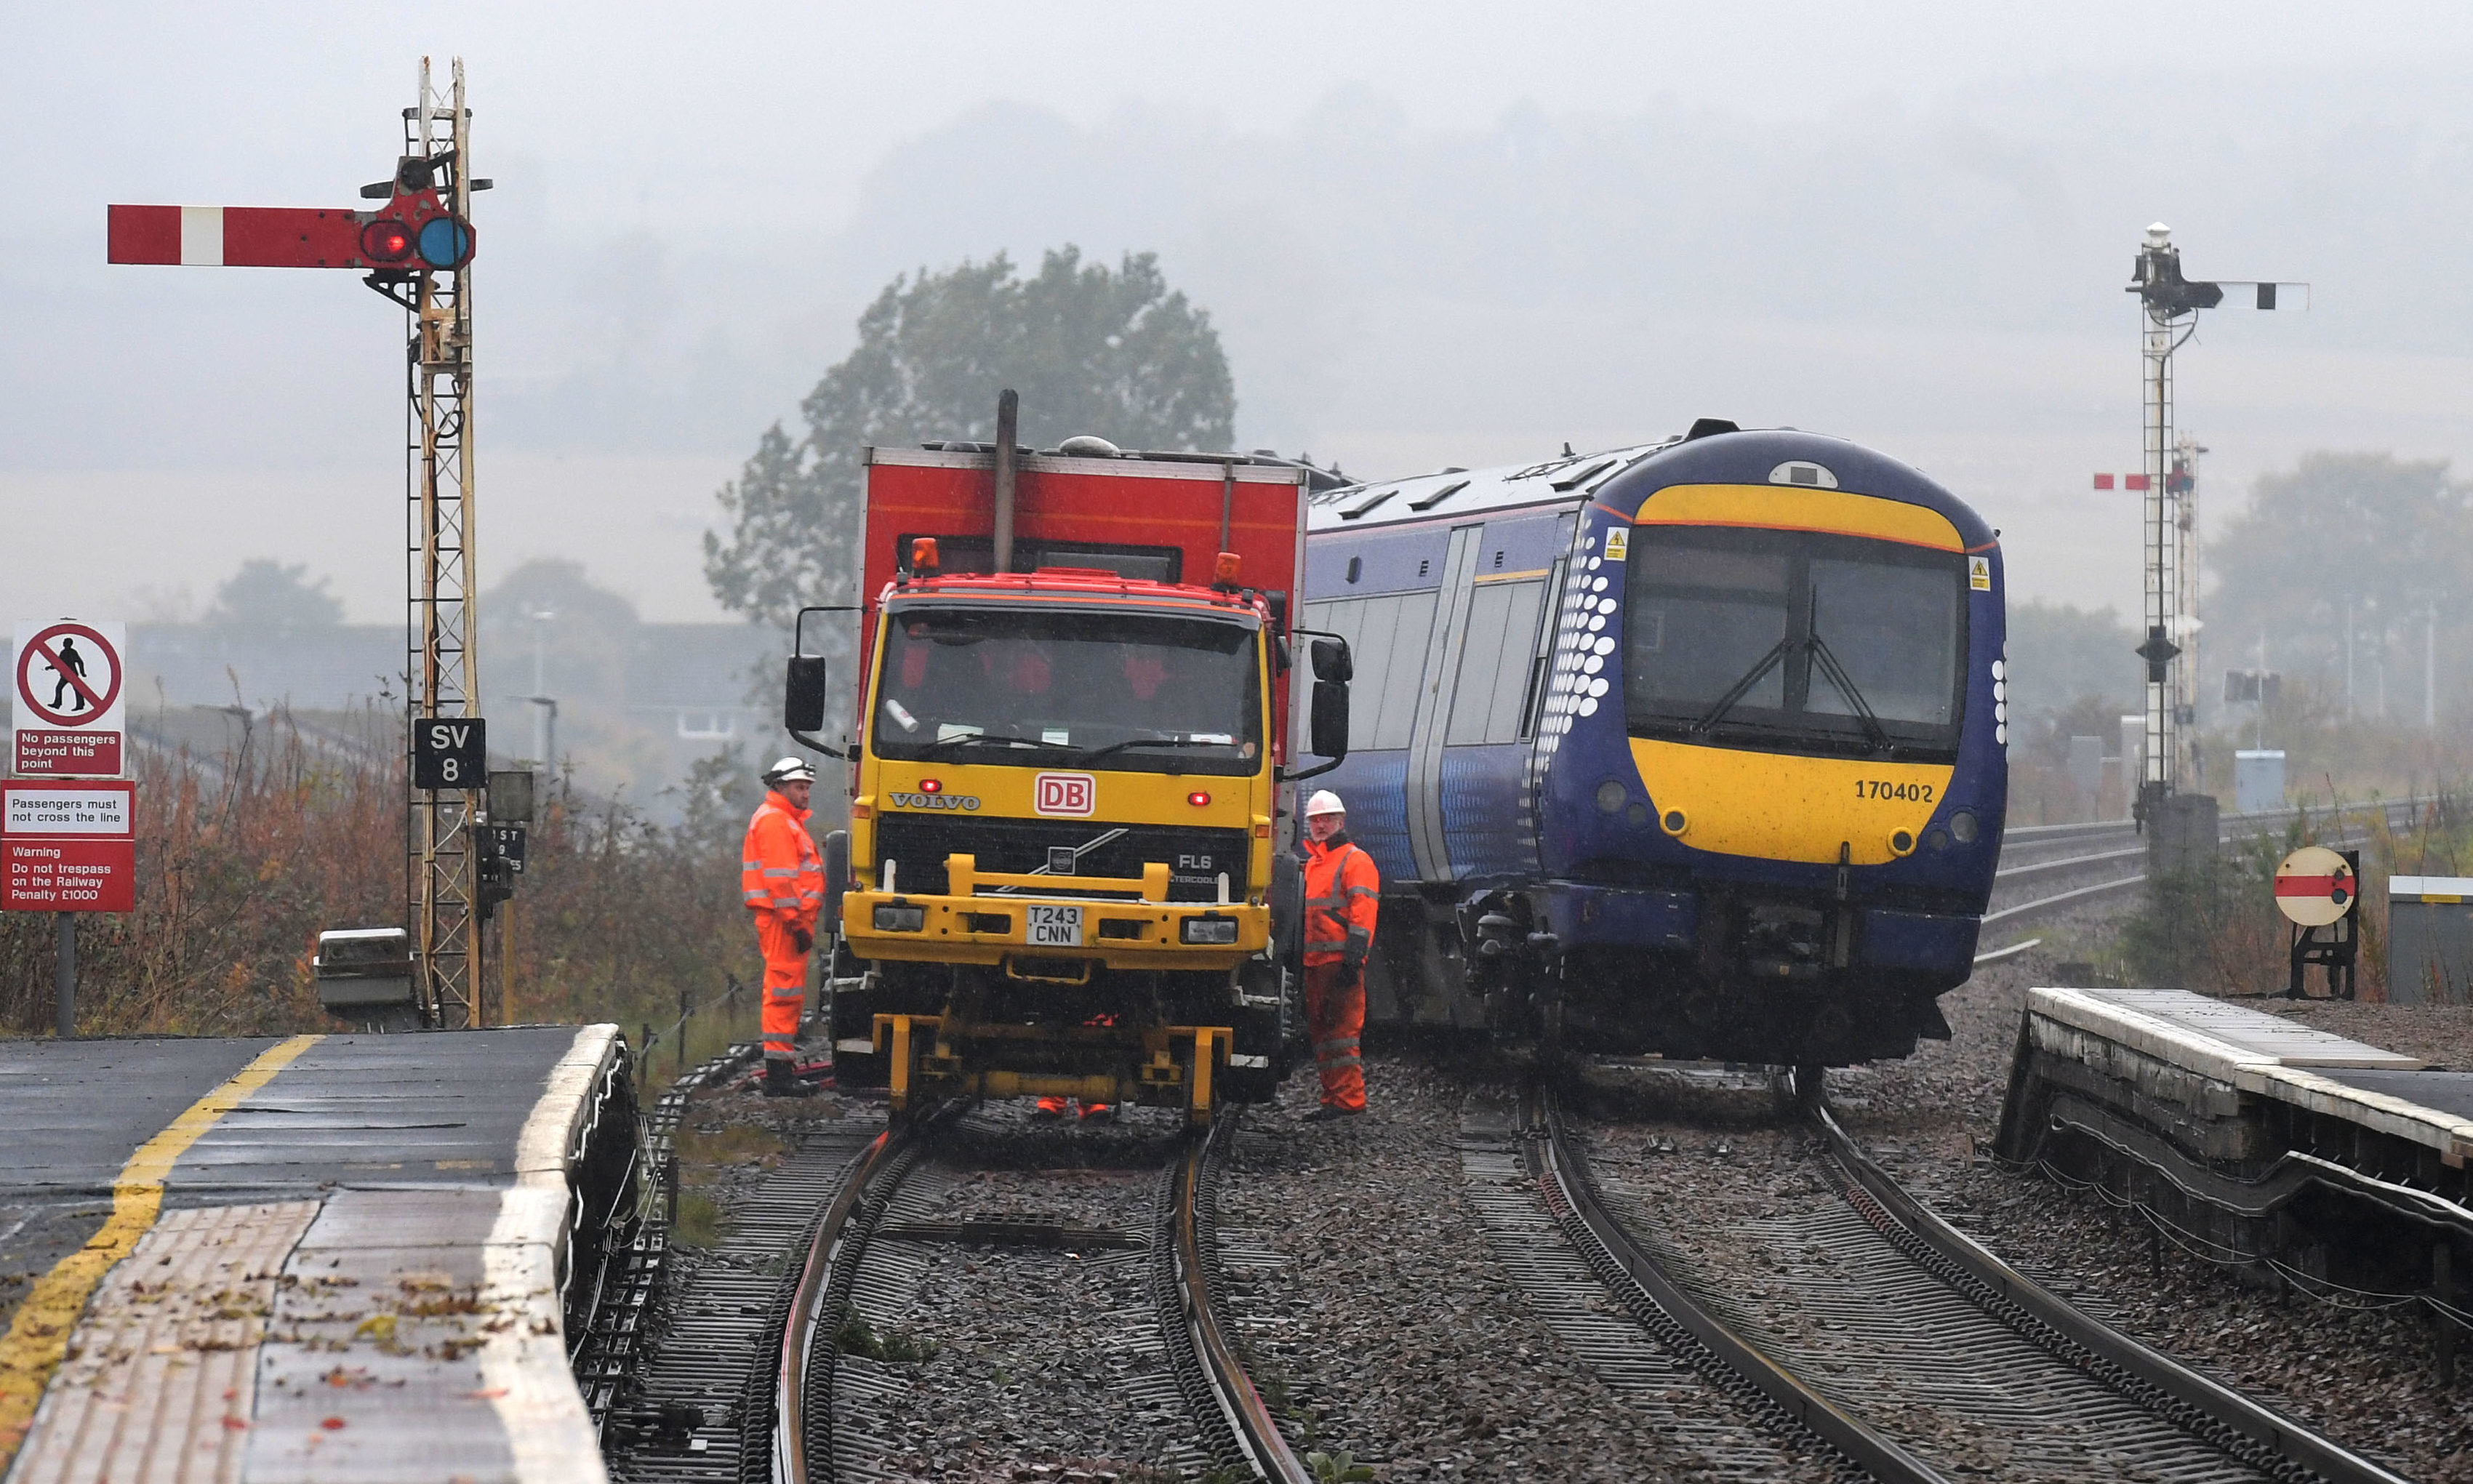 The derailed train at Stonehaven Station.